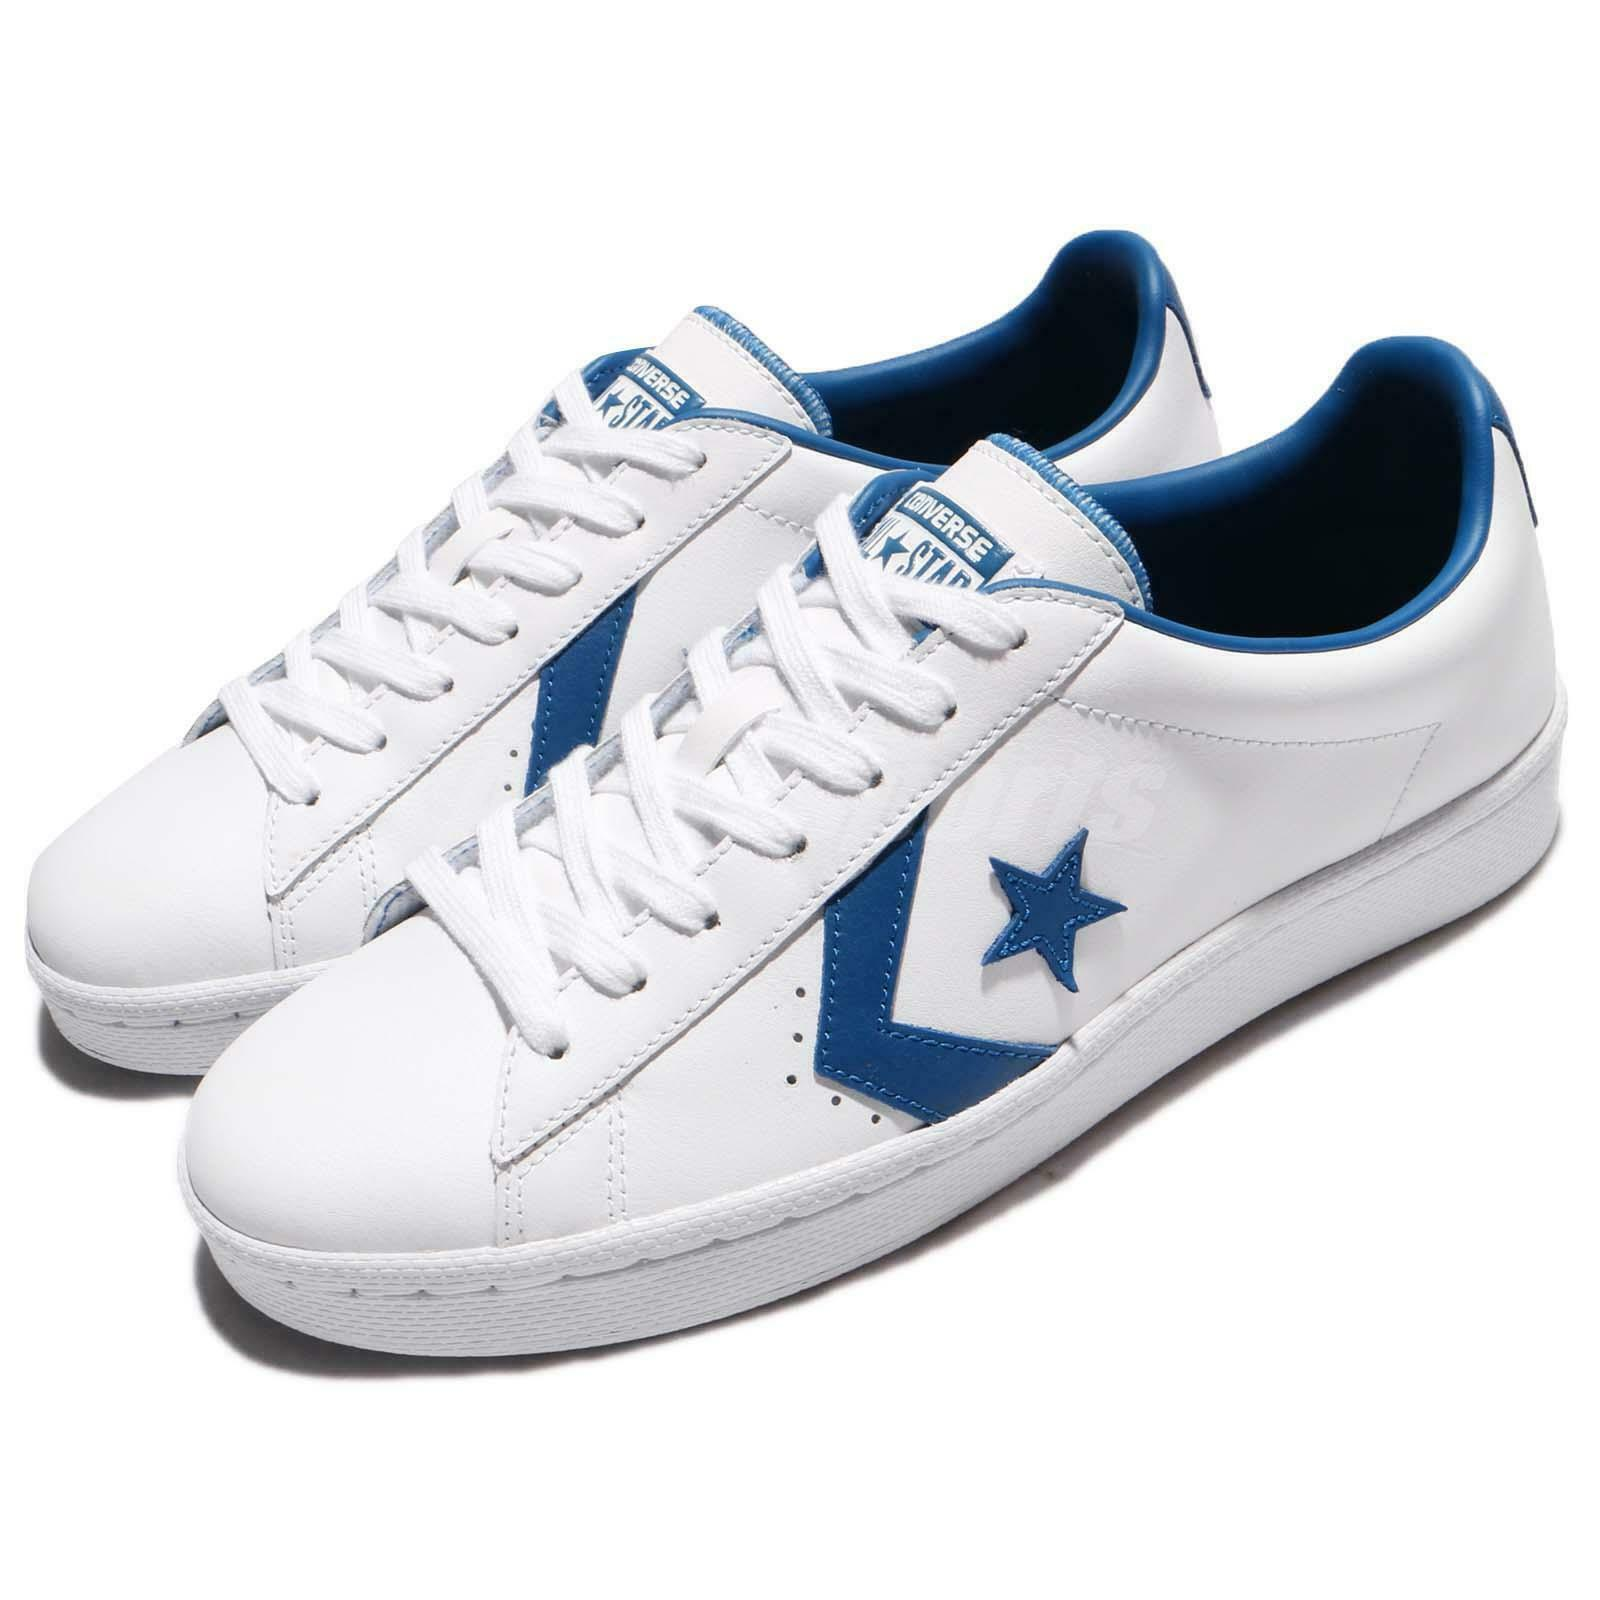 Converse PL 76 Pro Leather blanc bleu Jay hommes Vintage chaussures Turnchaussures 157807C